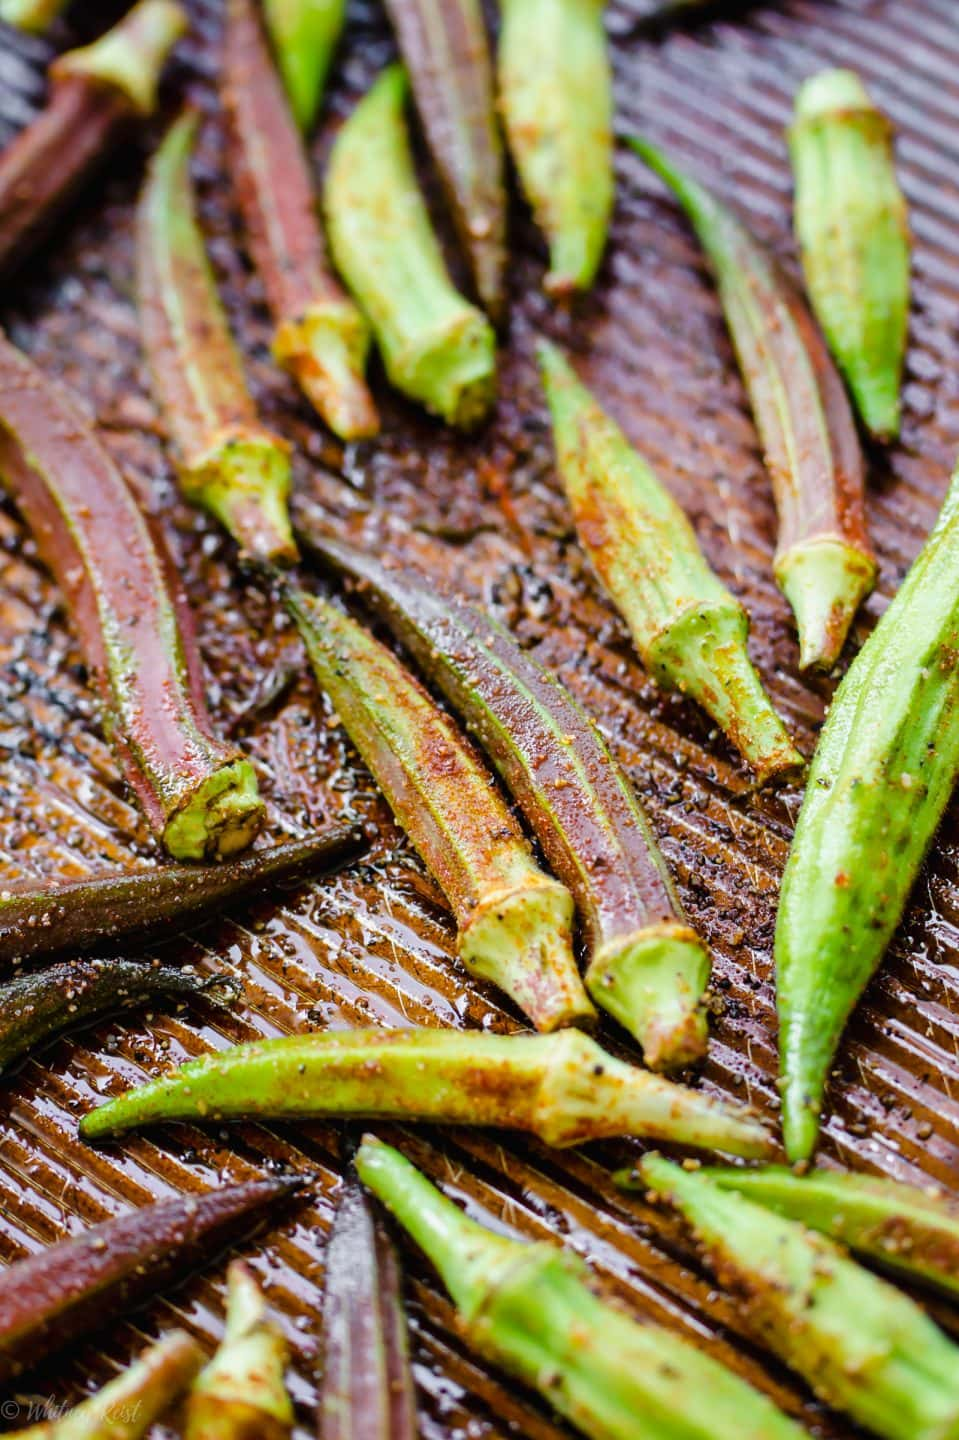 A baking sheet with raw okra pods and seasoning on top for roasting.